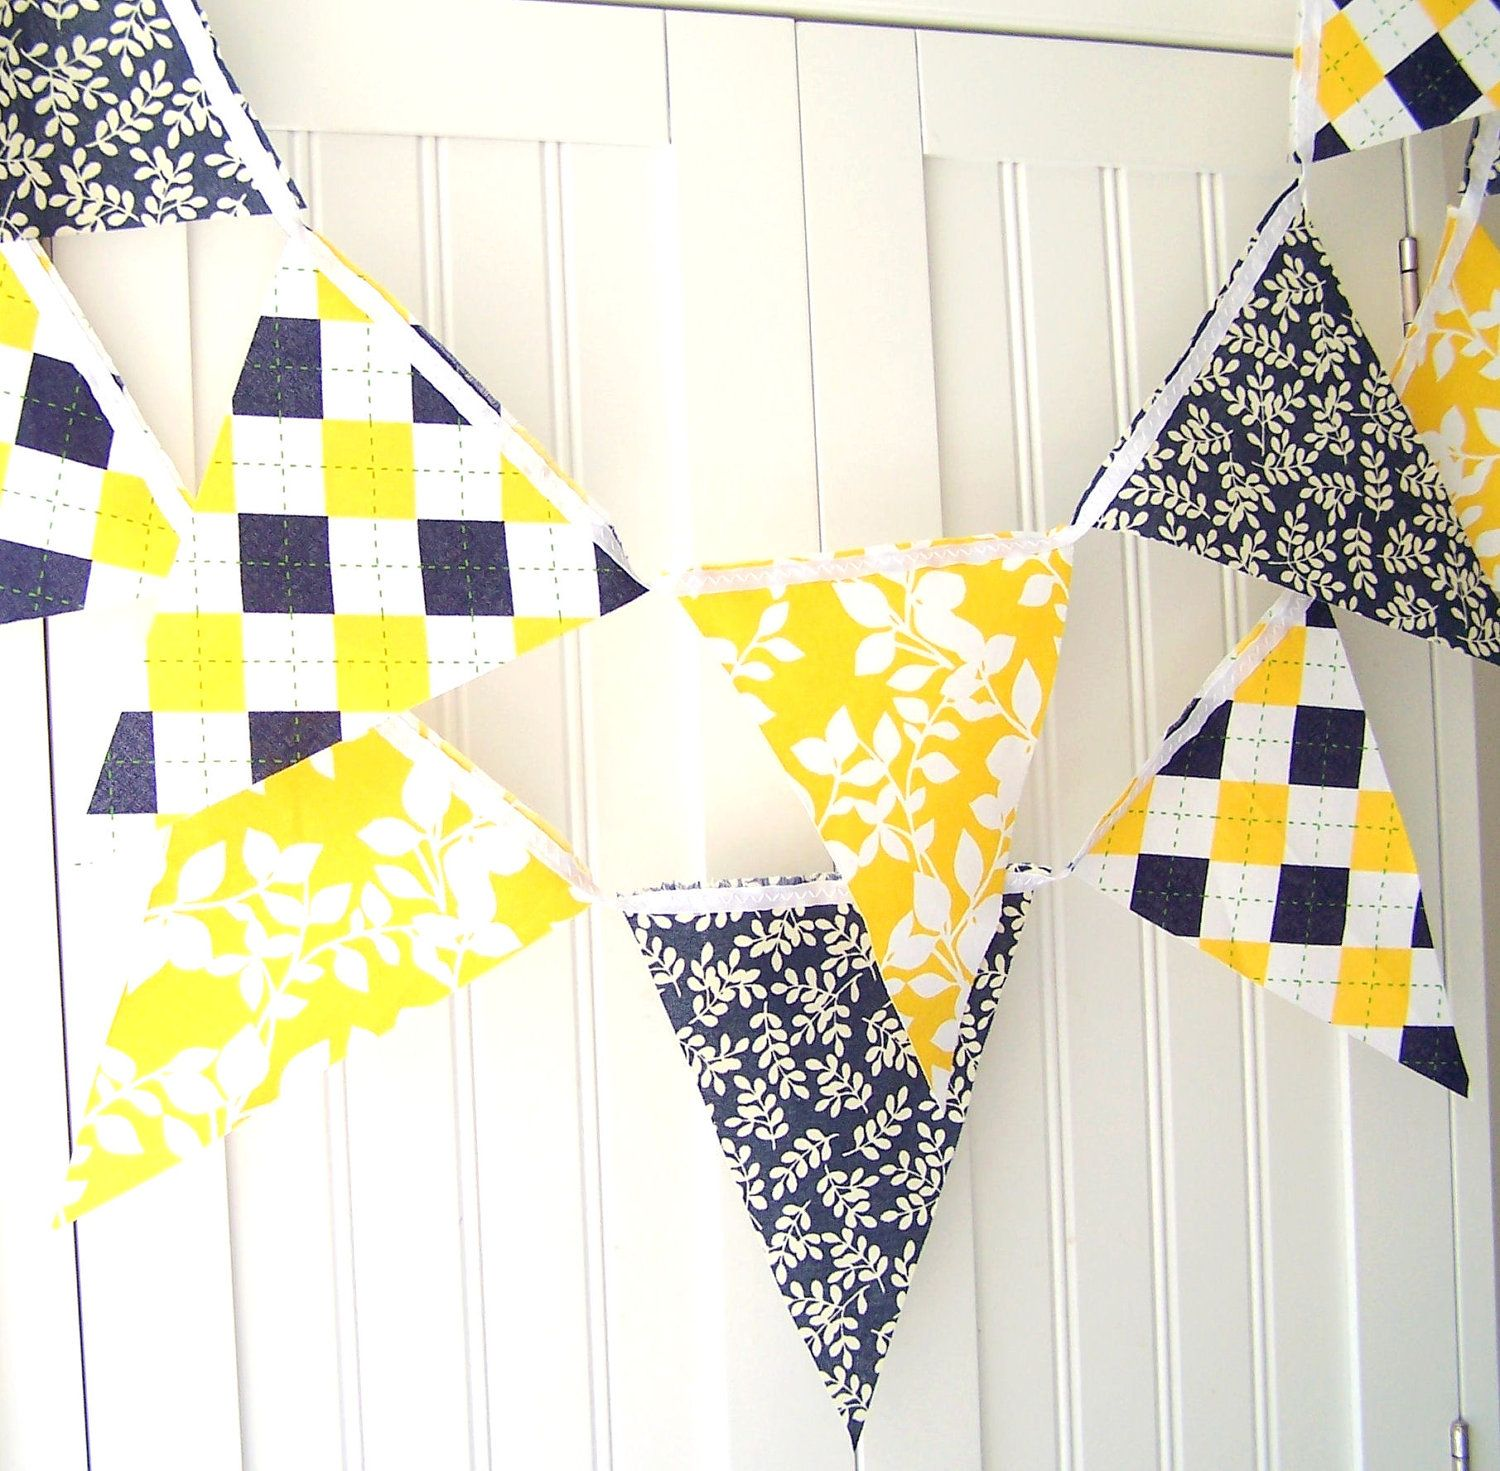 4 Feet Party Banner, Bunting, Navy Blue Leaves, Yellow Leaves, Navy ...